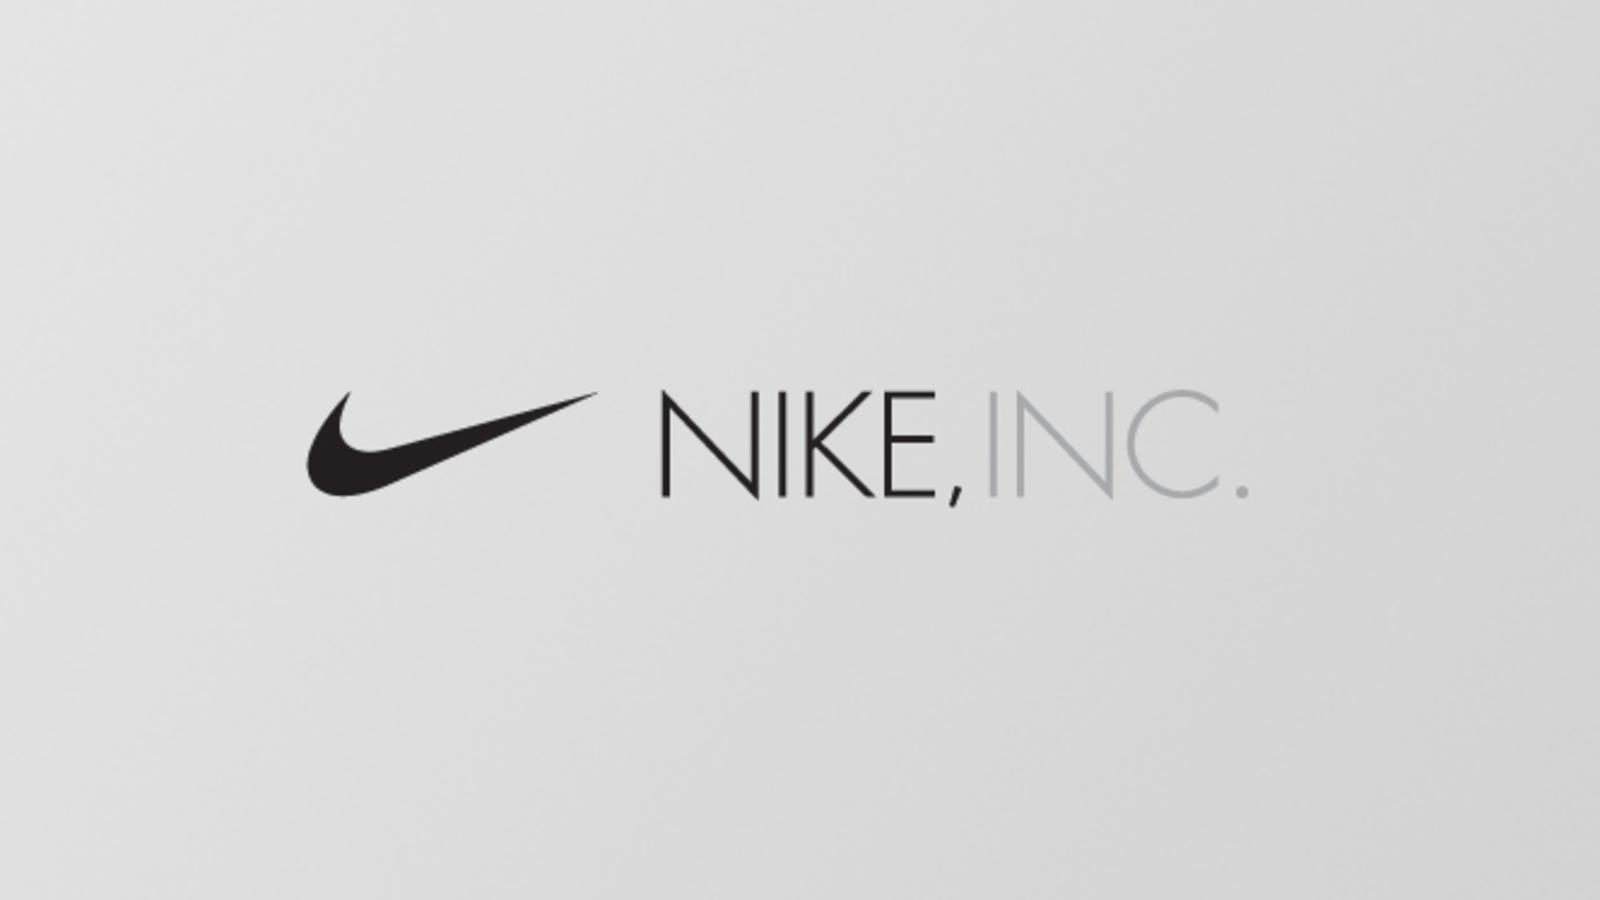 nike business Conclusion nike's efforts have not gone without notice as the study points out, nike has appeared in business ethics magazine's list of 100 best corporate citizens.